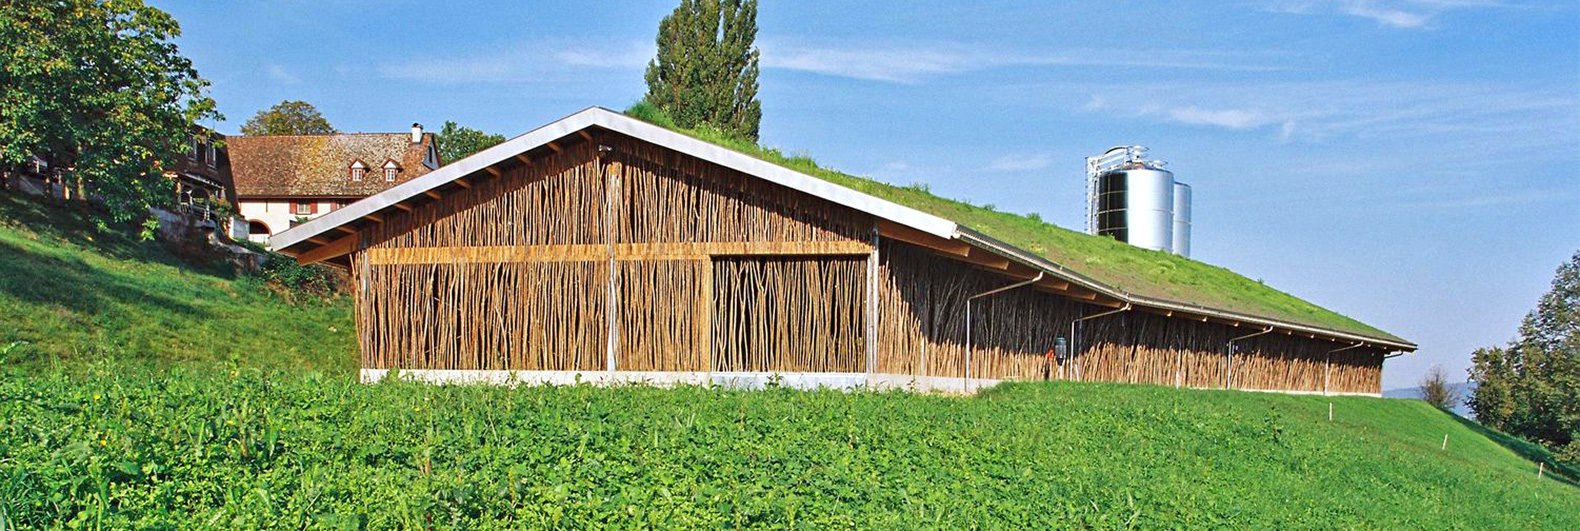 Beautiful Cow Barn In Basel Is Made Of Tree Branches Topped With A Grassy Roof